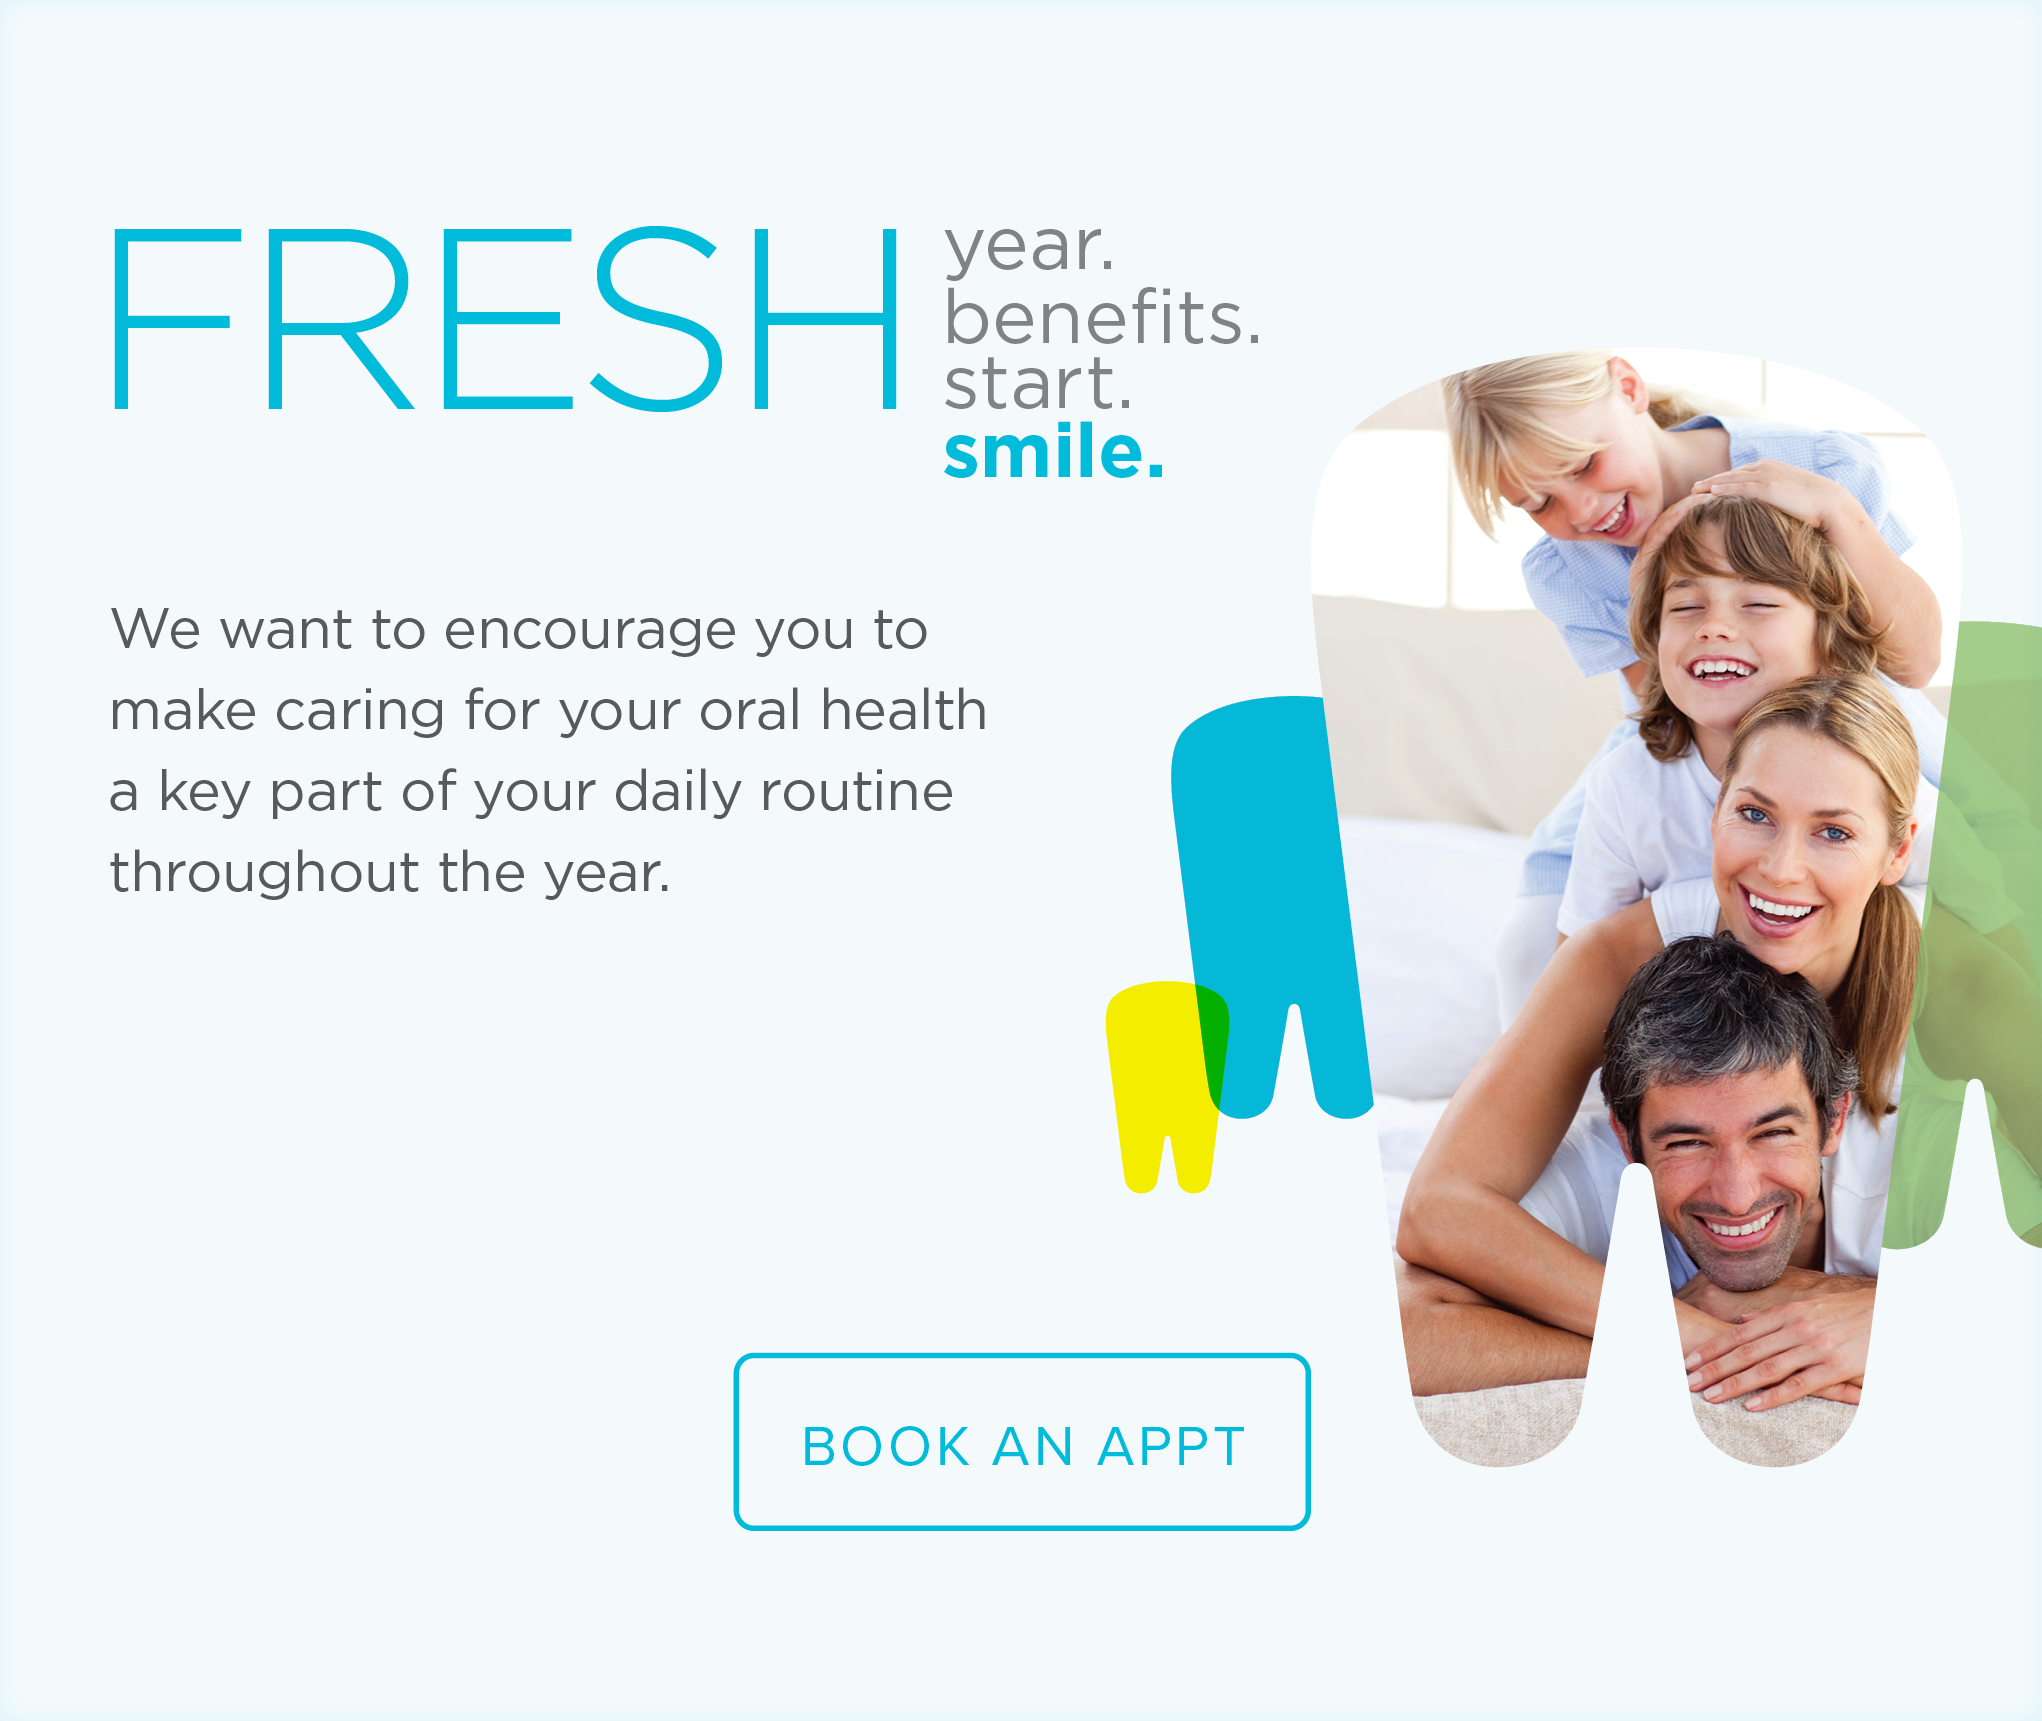 West Cobb Dentist Office - Make the Most of Your Benefits